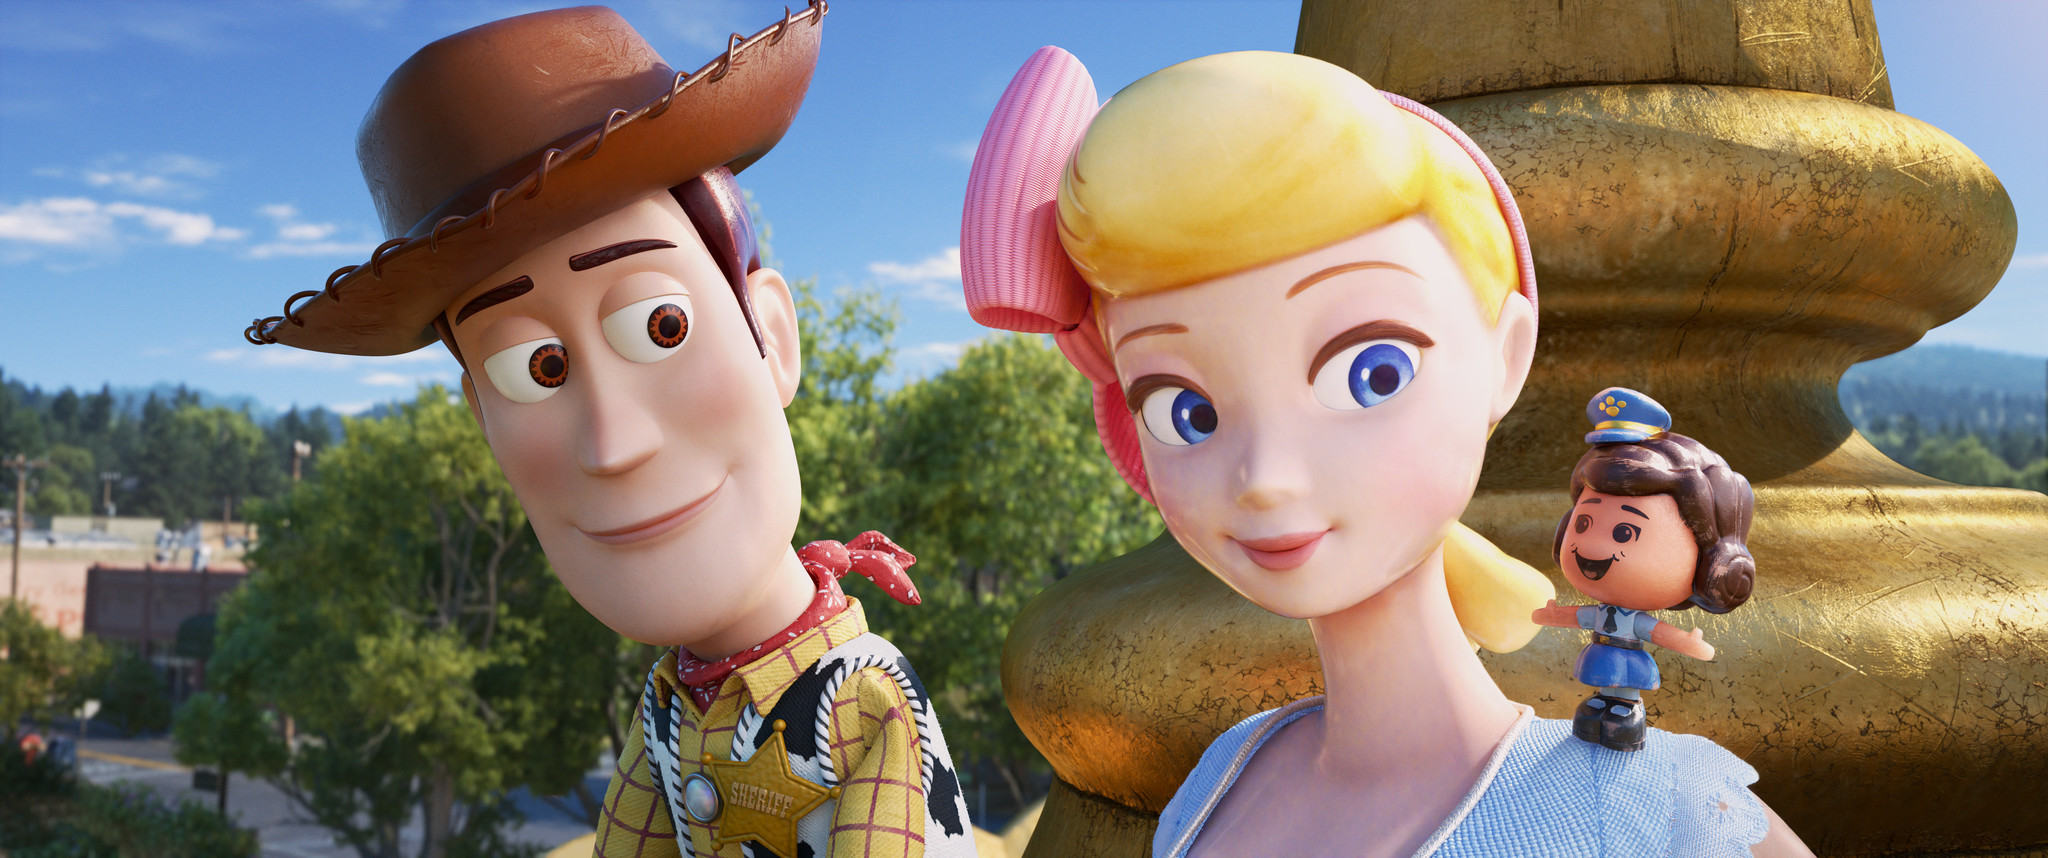 'Toy Story 4' finds the lost and toughened-up Bo Peep, plus a flock of new characters